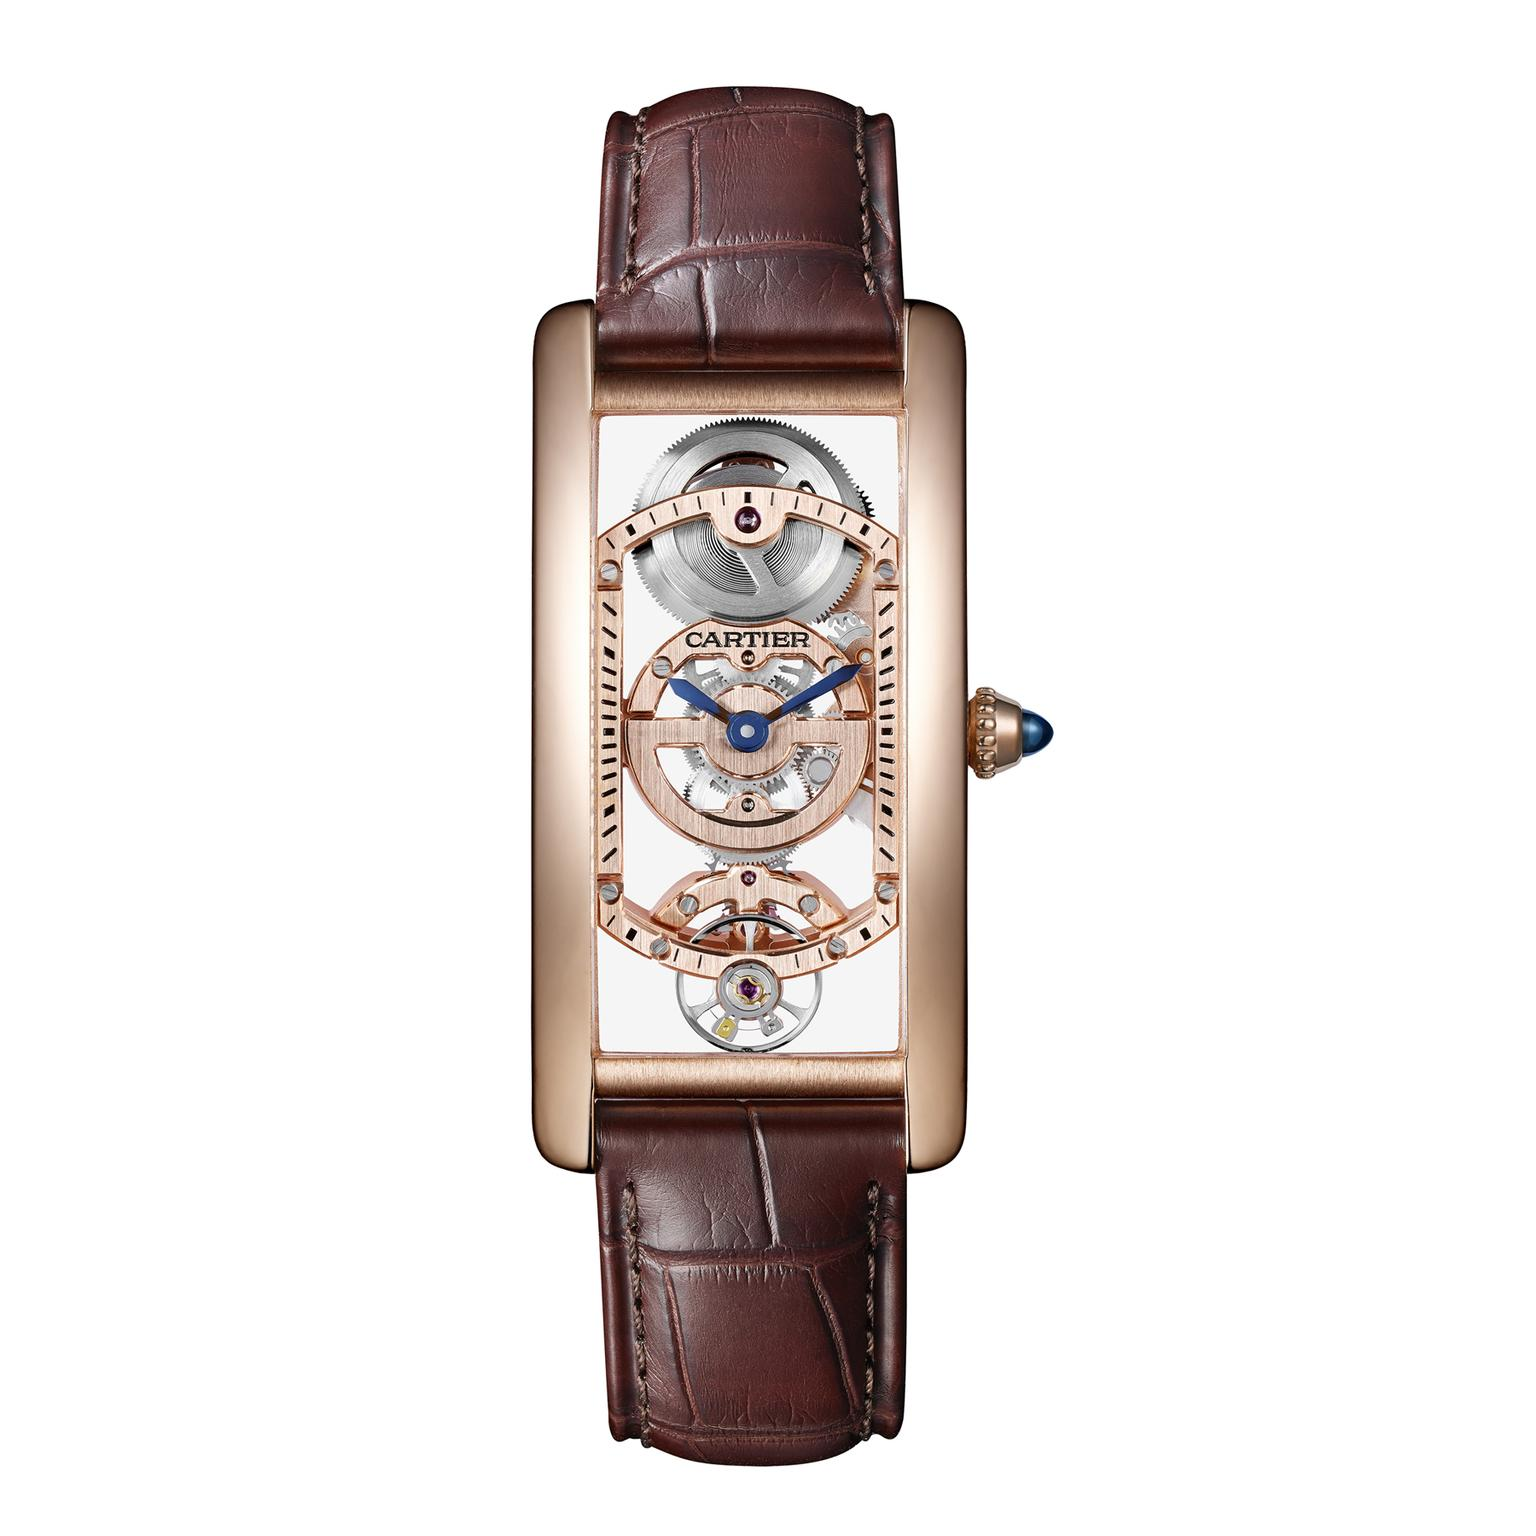 Cartier Tank Cintrée Skeleton pink gold watch